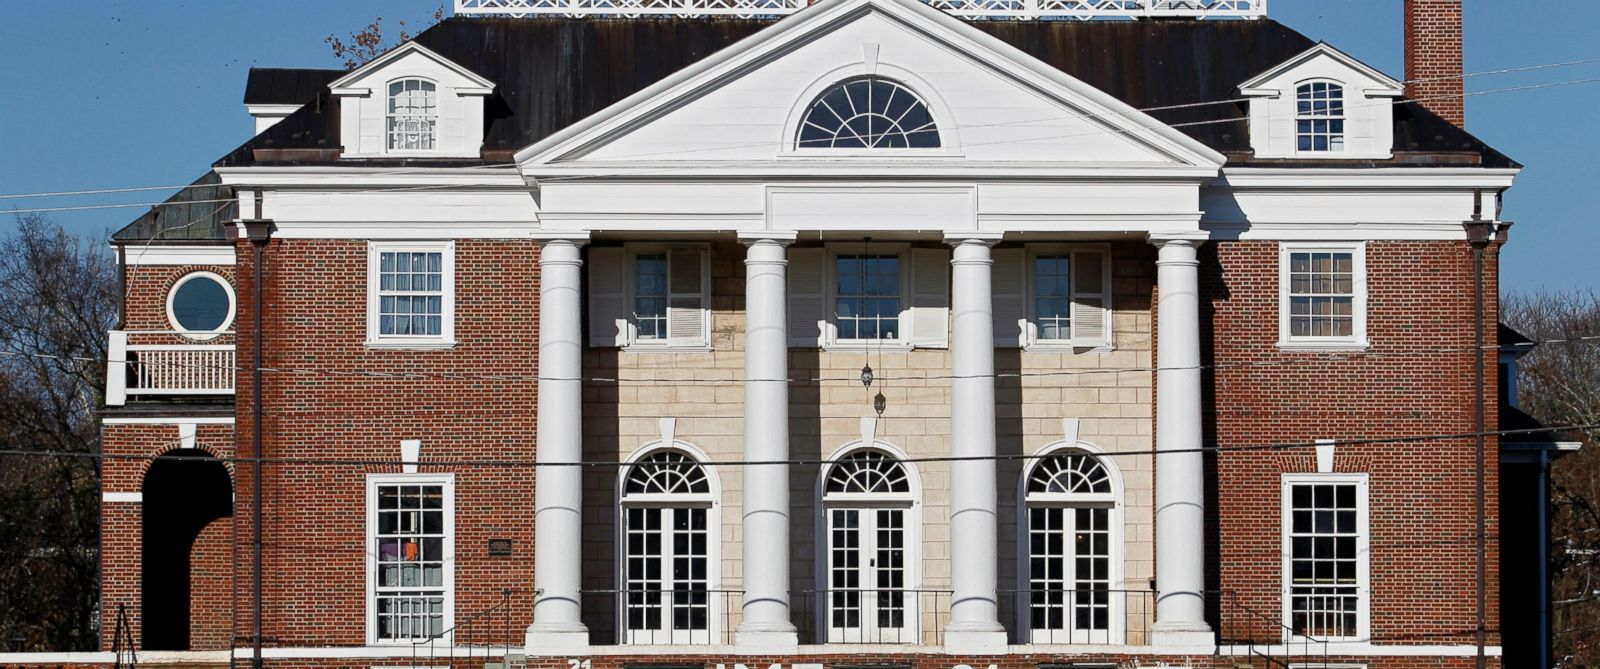 PHOTO: An exterior view of the Phi Kappa Psi fraternity house at the University of Virginia, in Charlottsville, Va.